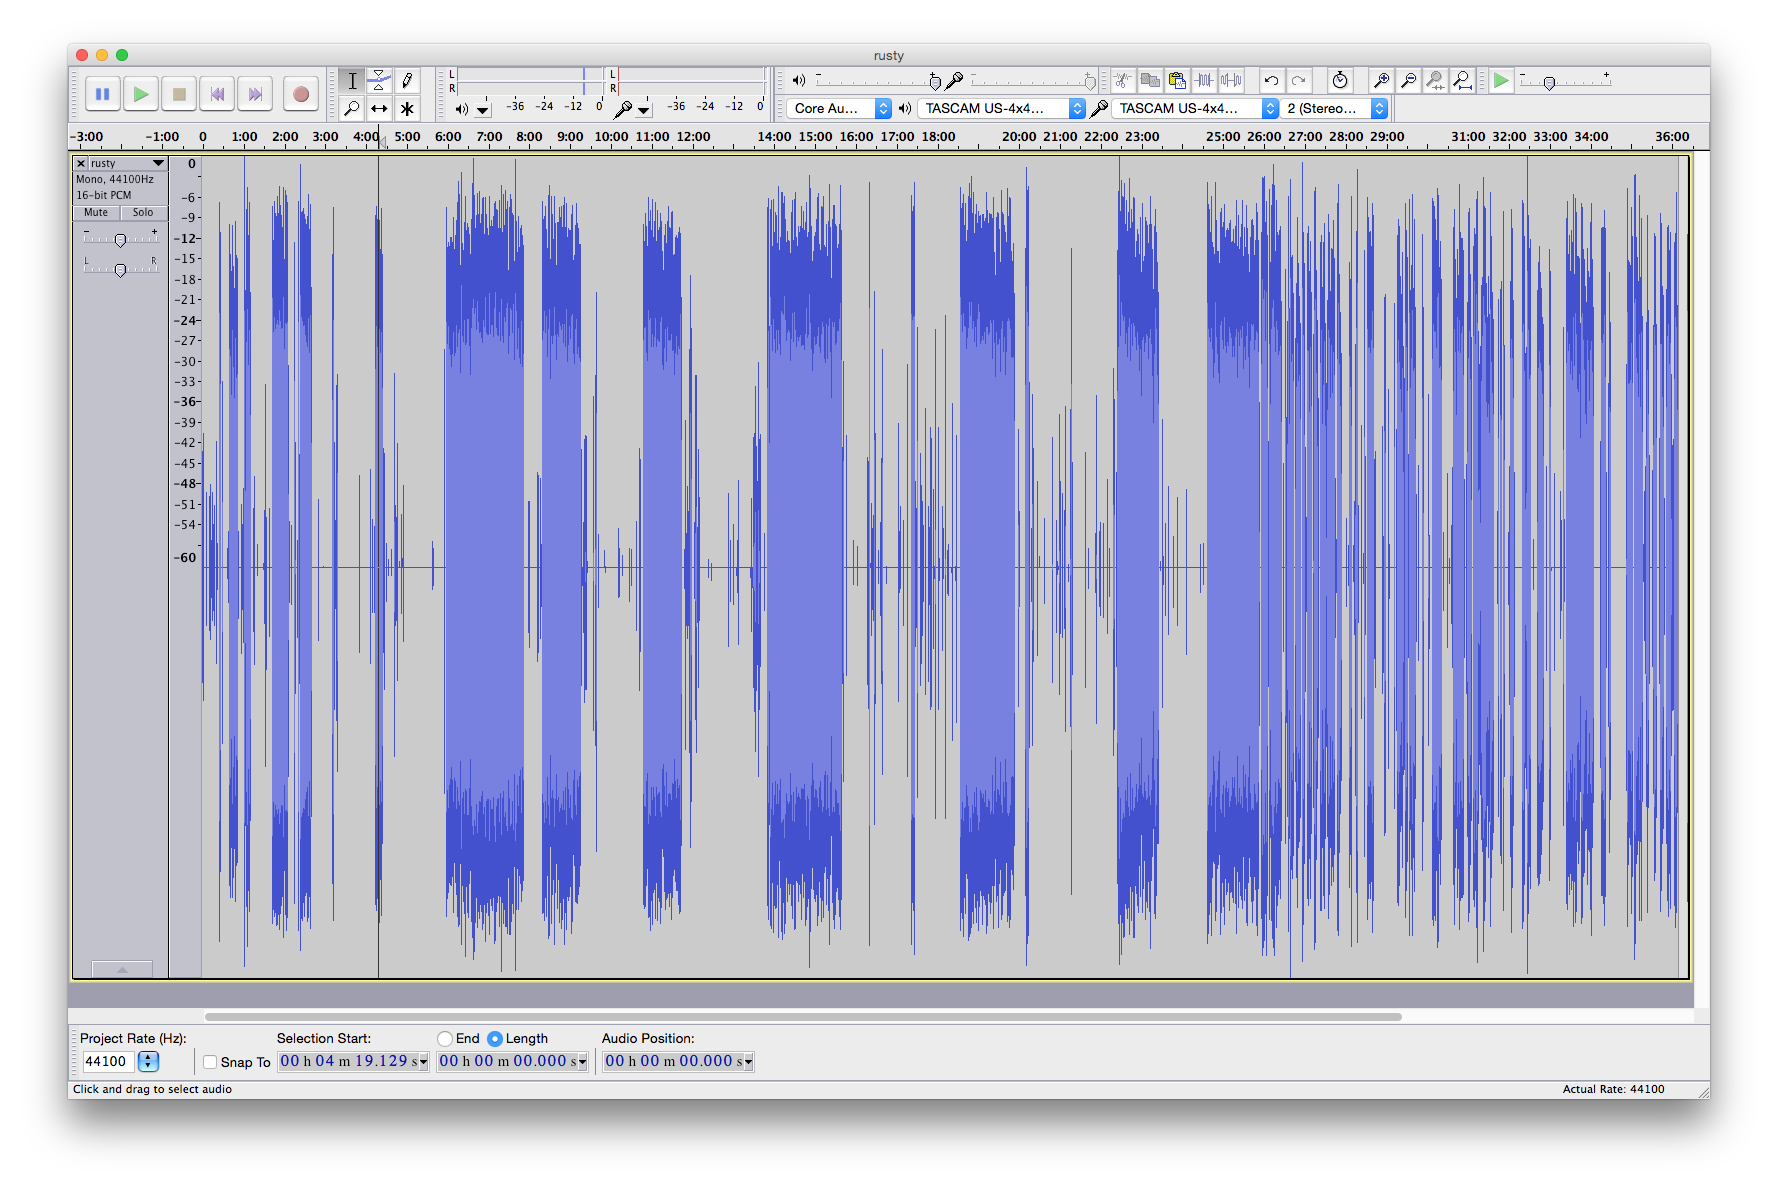 Hot dang, that's some sweet looking audio forms right there.